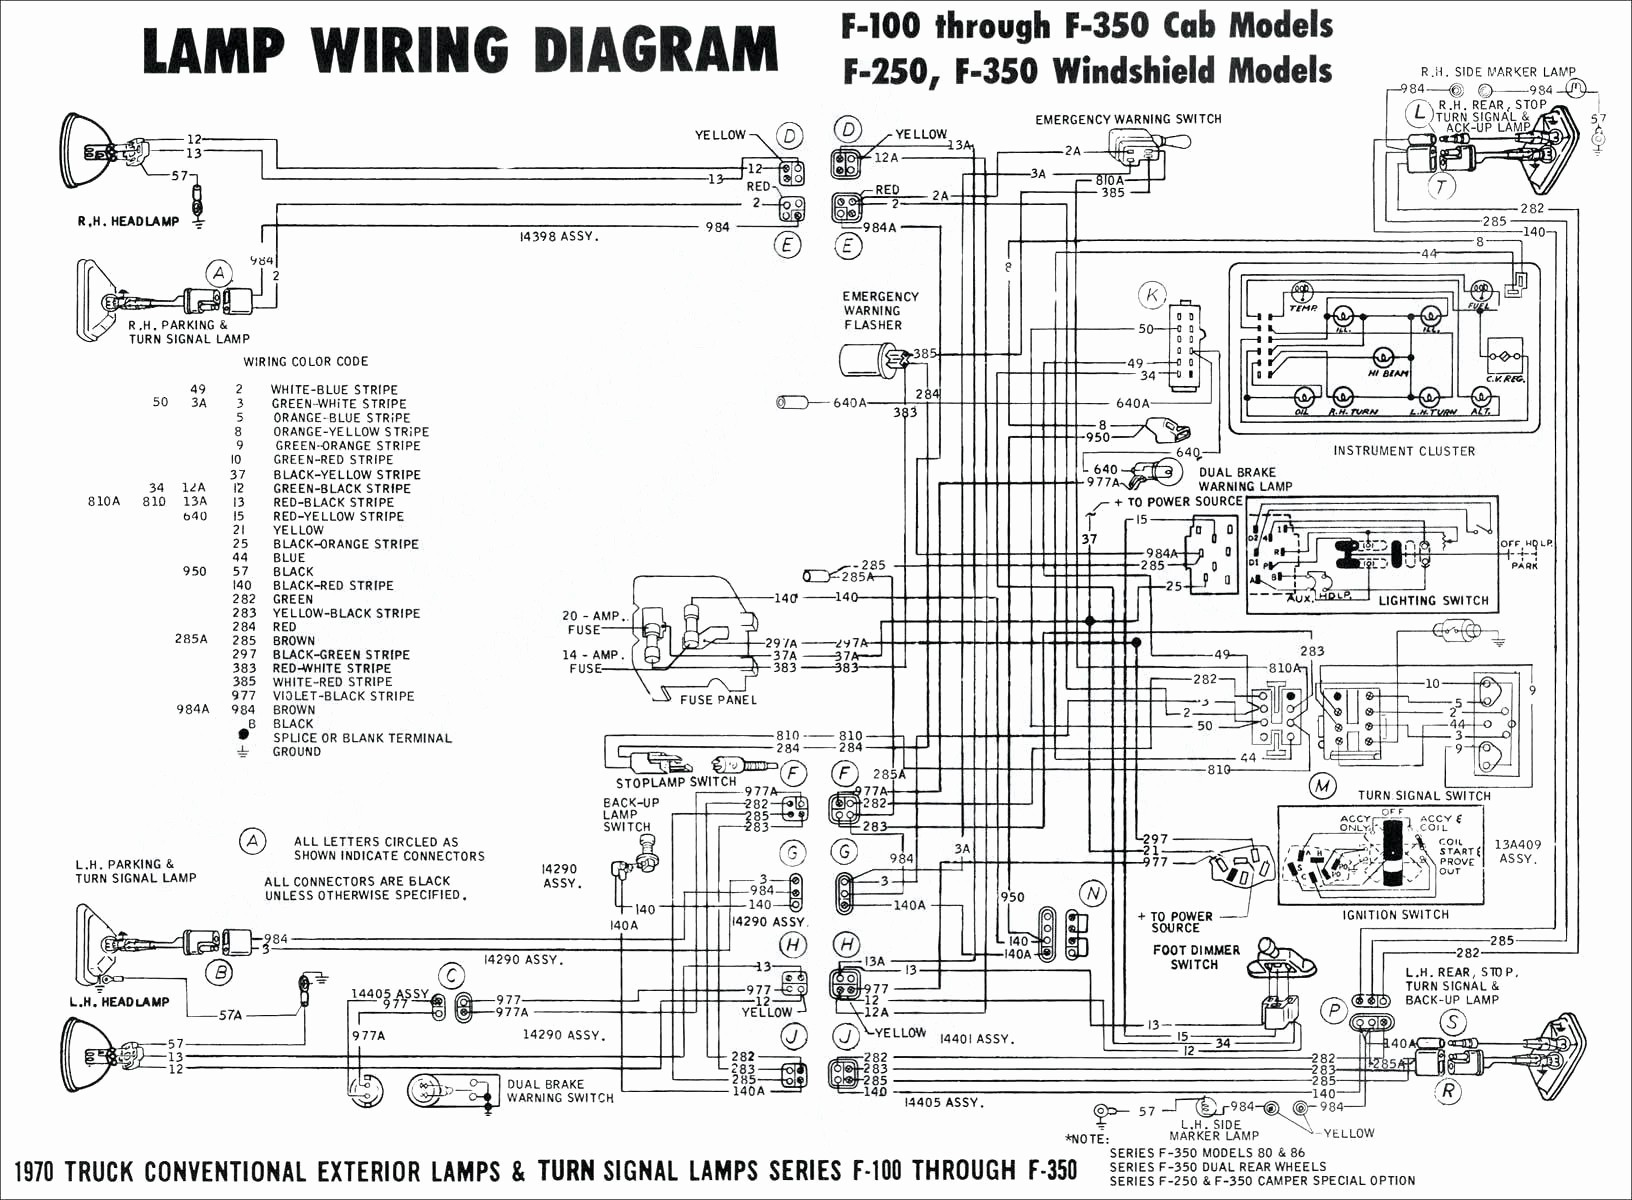 2009 silverado headlight wiring diagram touareg headlight wiring diagram #11